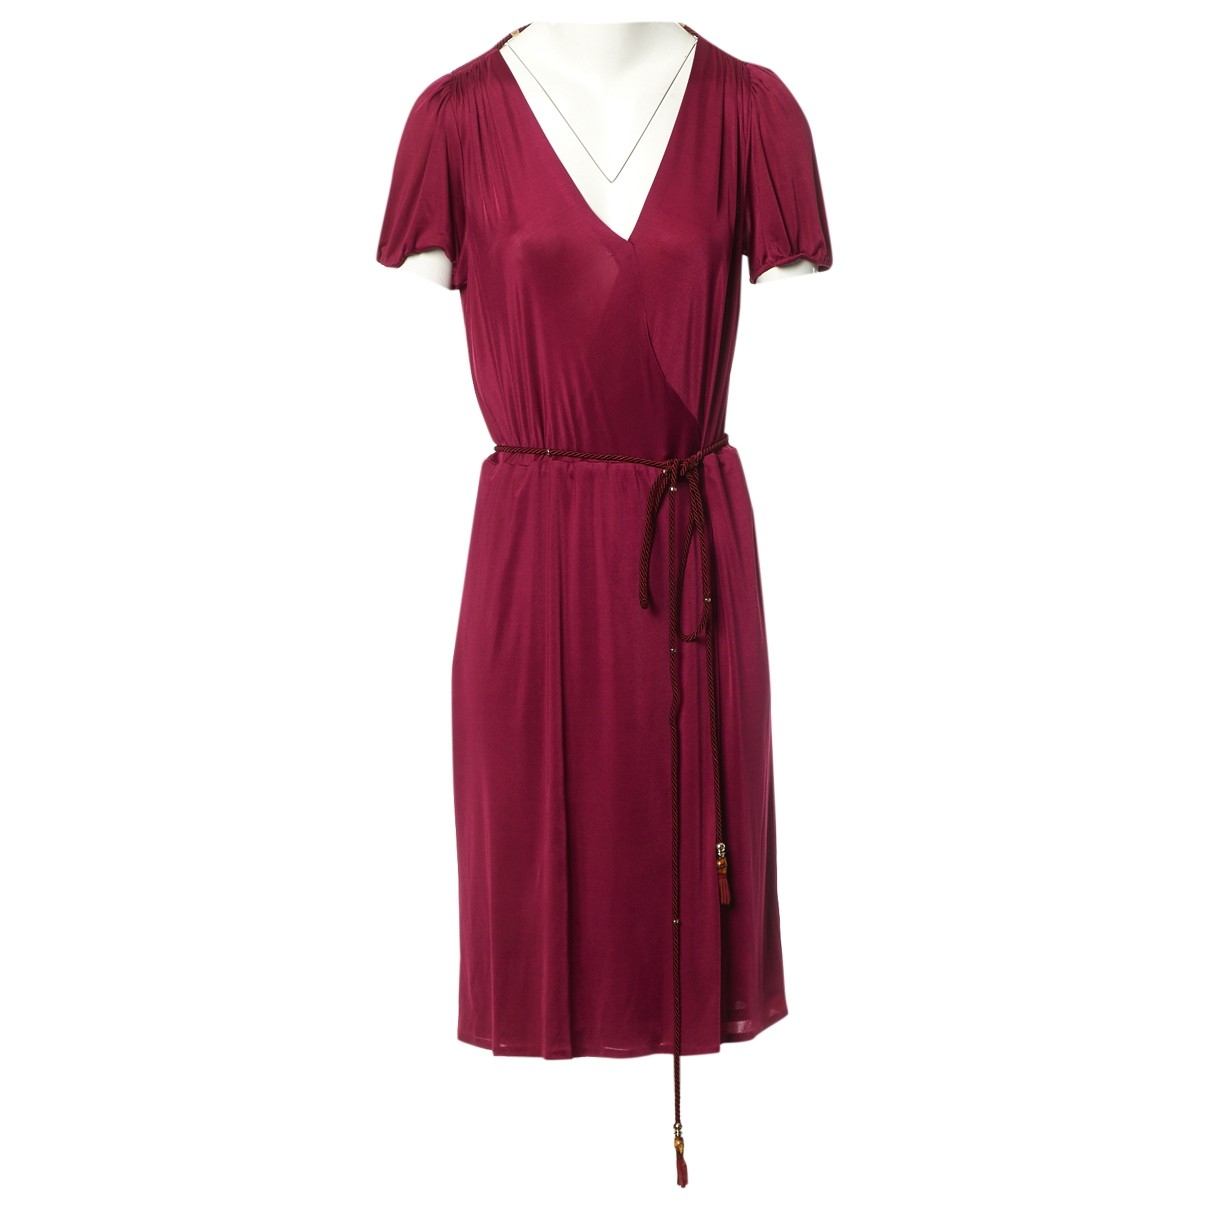 Gucci \N Kleid in  Bordeauxrot Polyester